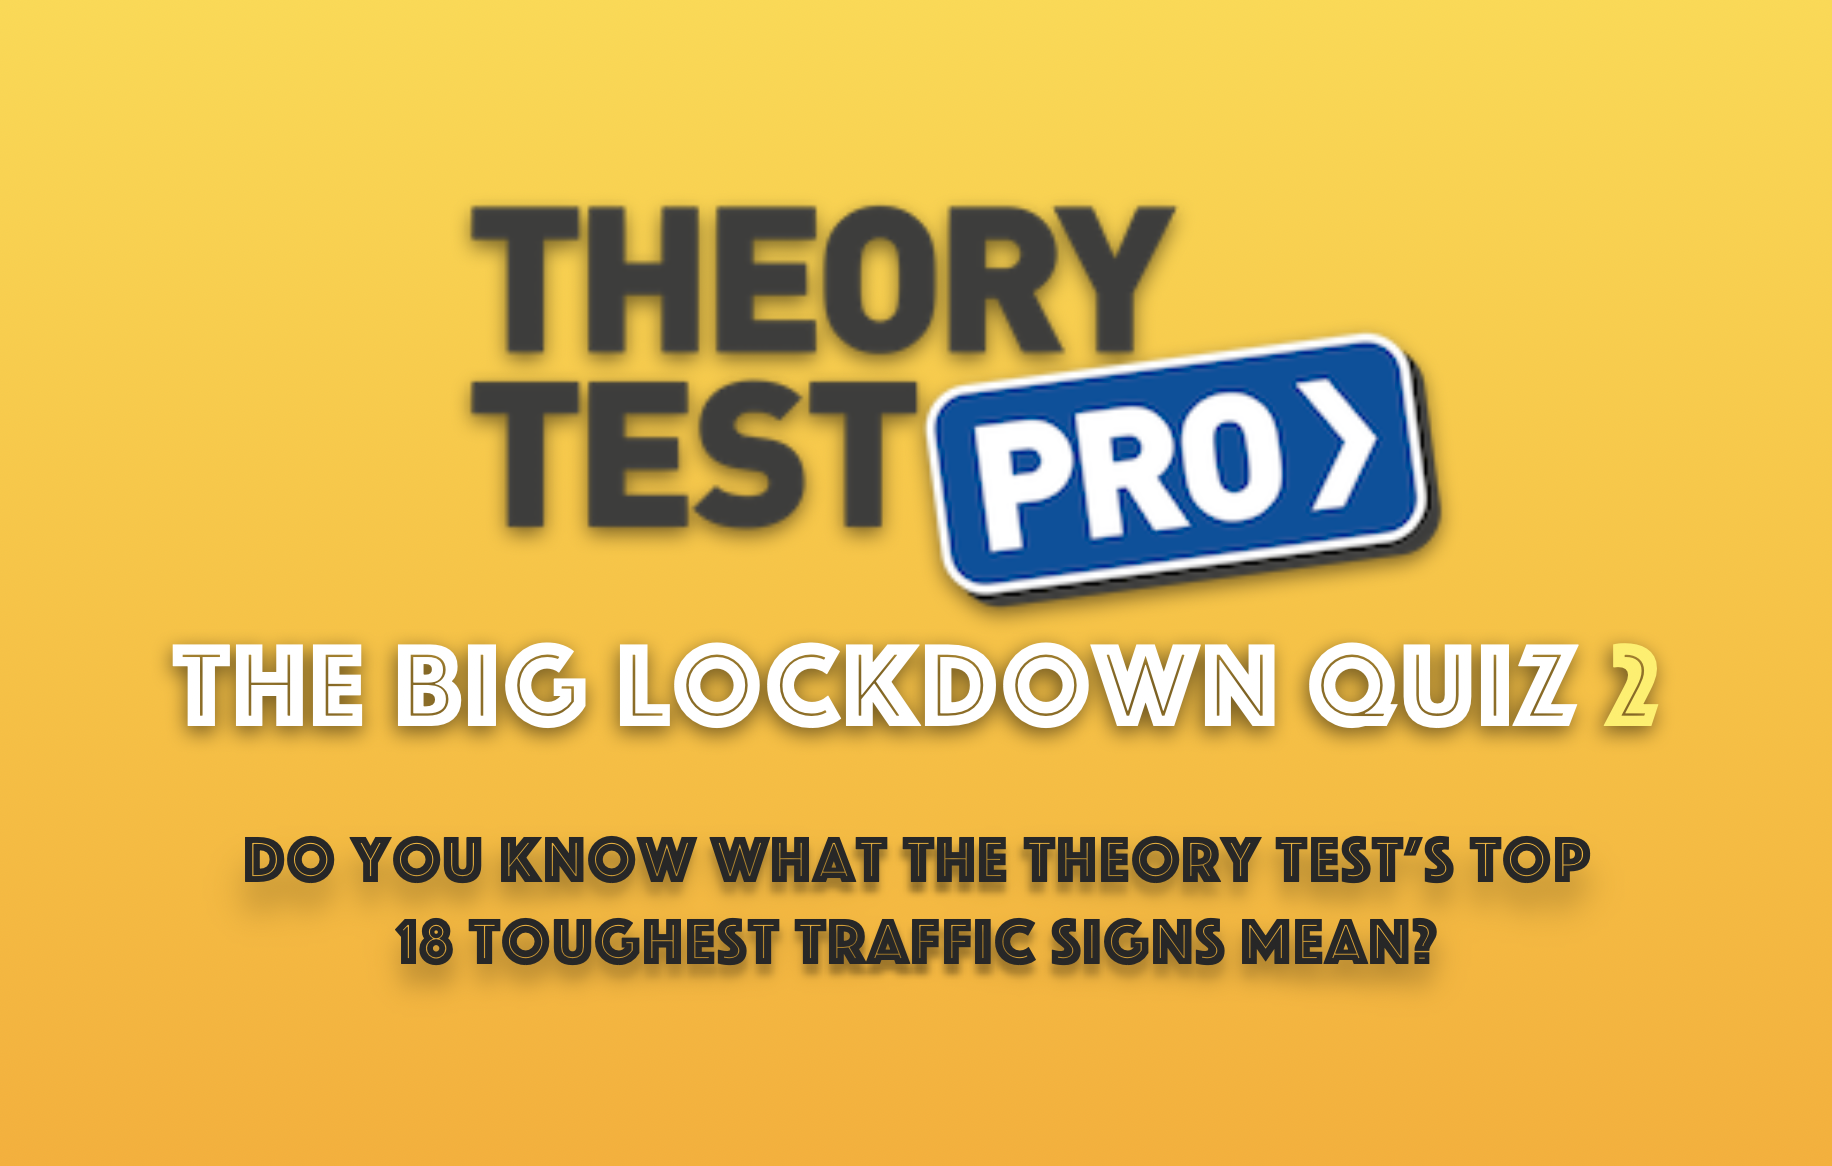 The Big Lockdown Quiz 2: Top 18 Toughest Traffic Signs